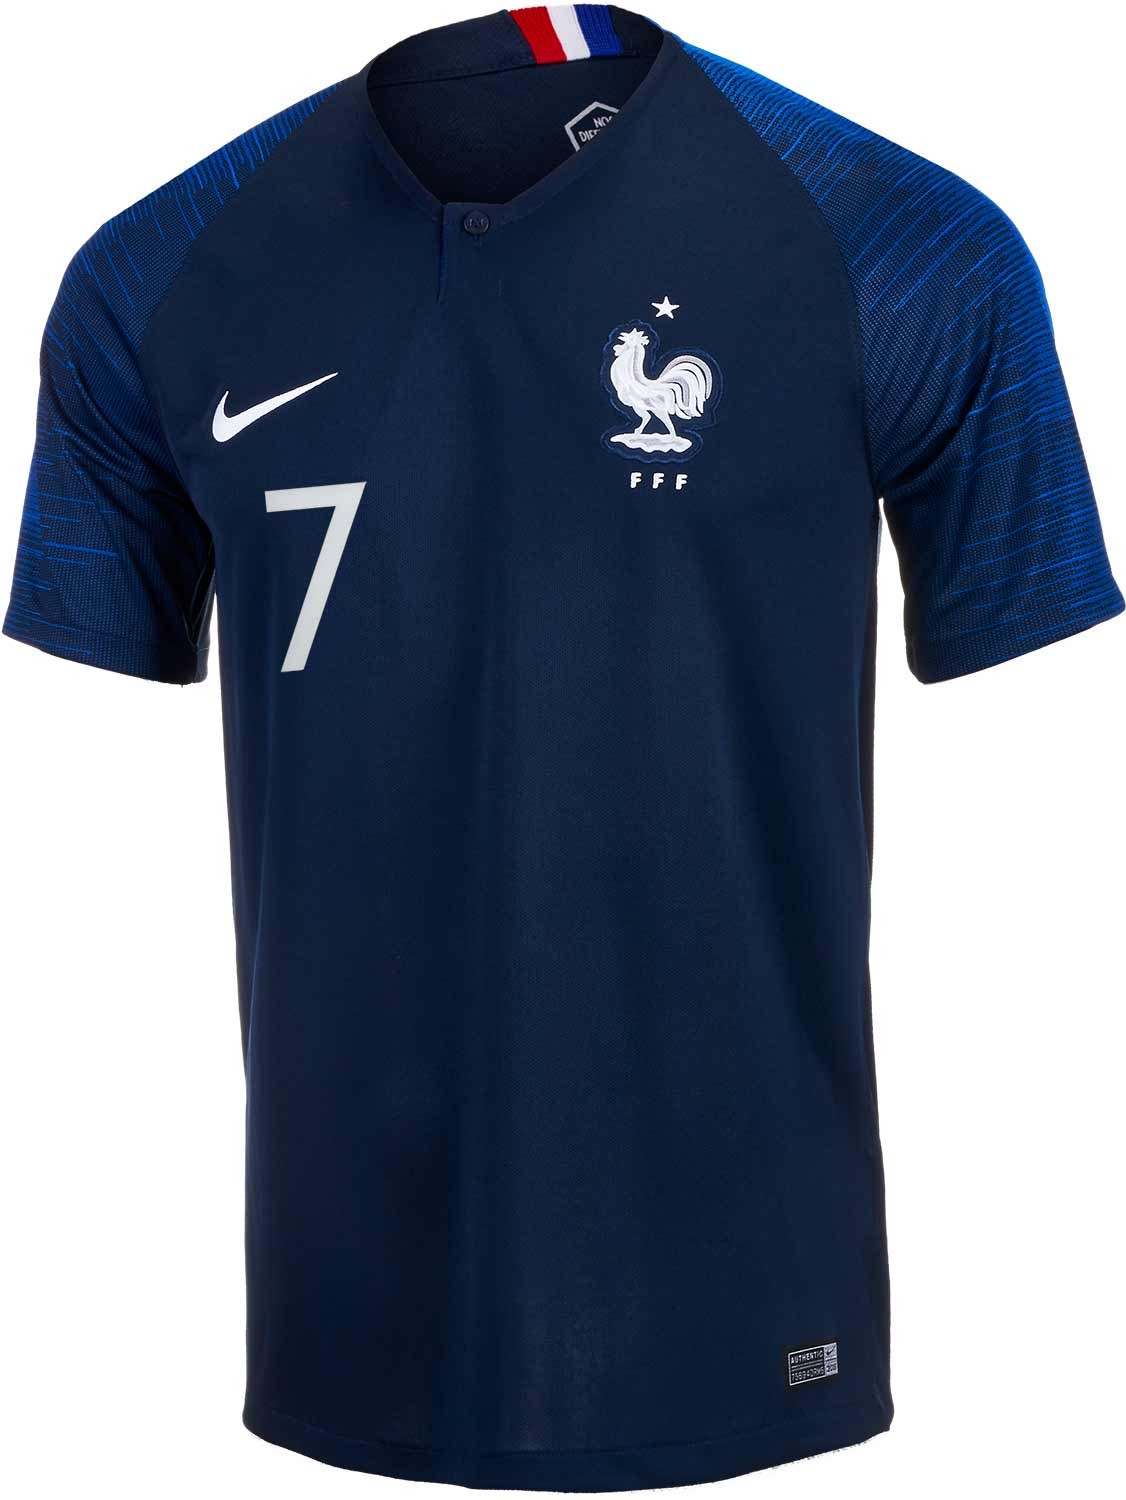 the best attitude 59d86 0f127 2018/19 Kids Nike Antoine Griezmann France Home Jersey ...